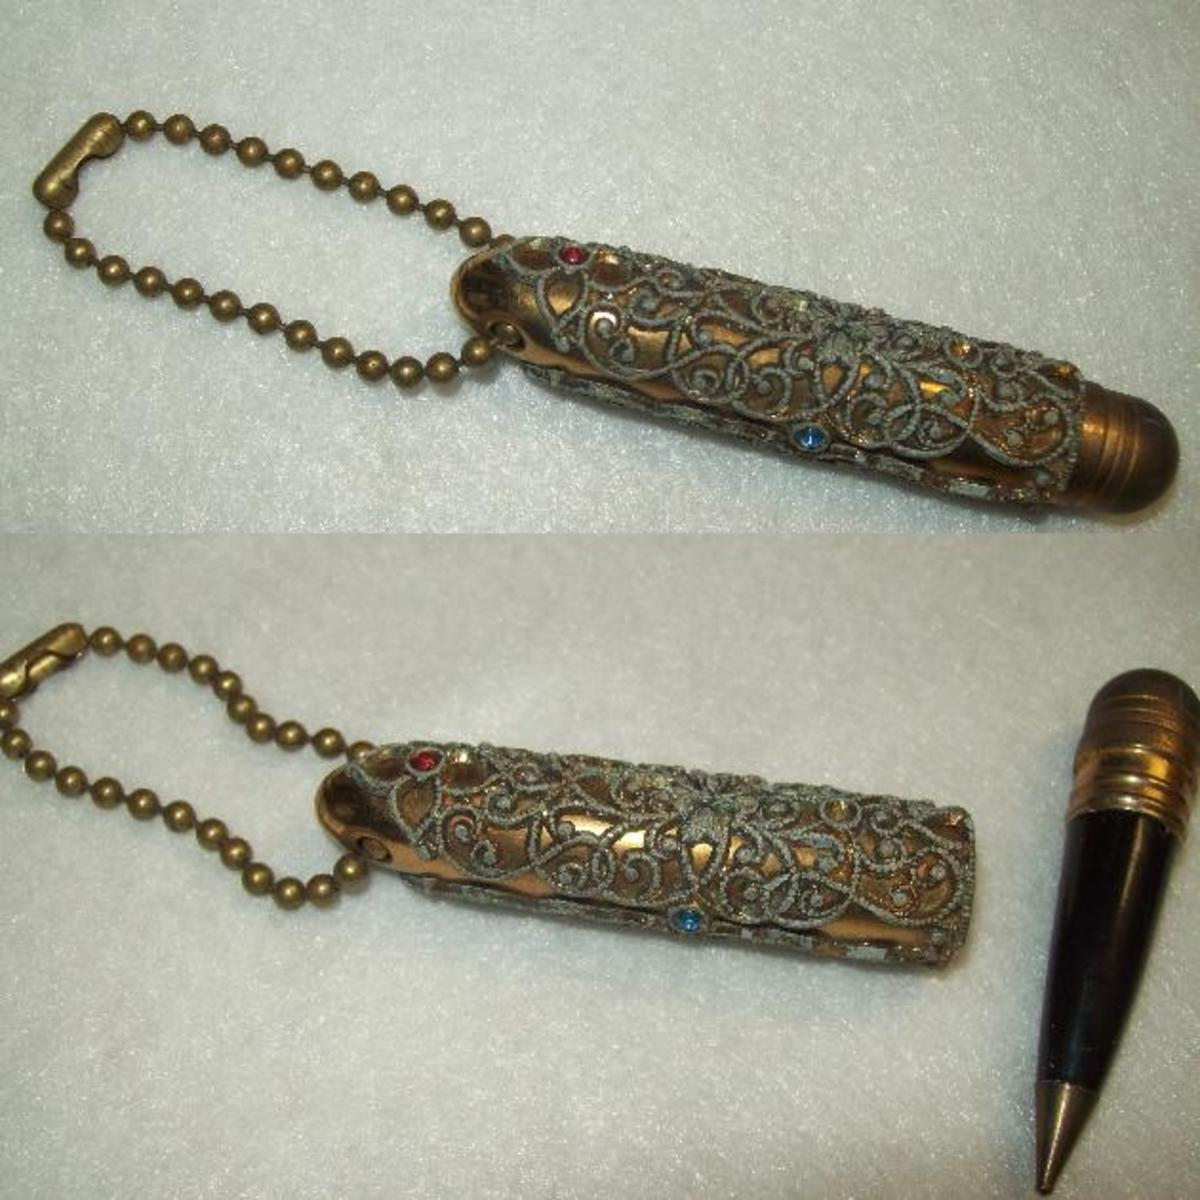 Bejeweled pen key-chain.